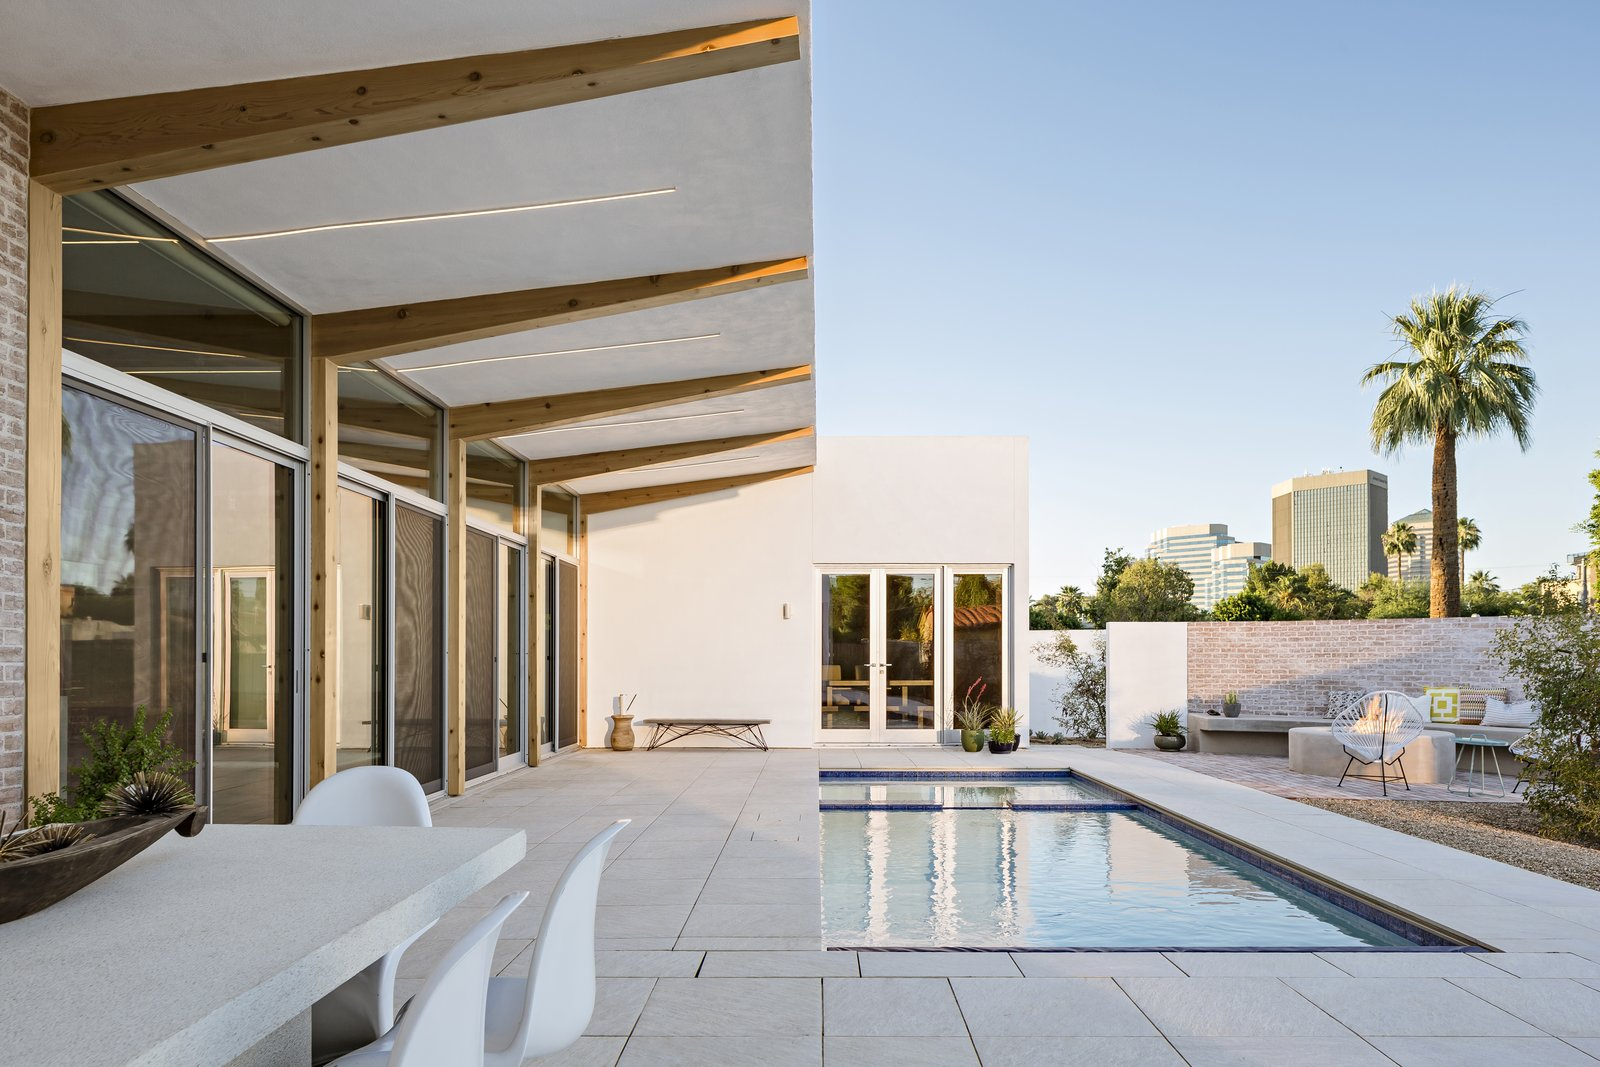 """Sol"" is a new home in the Willo Historic District in Phoenix. The house is a modern interpretation of the vernacular courtyard style found throughout the southwest."